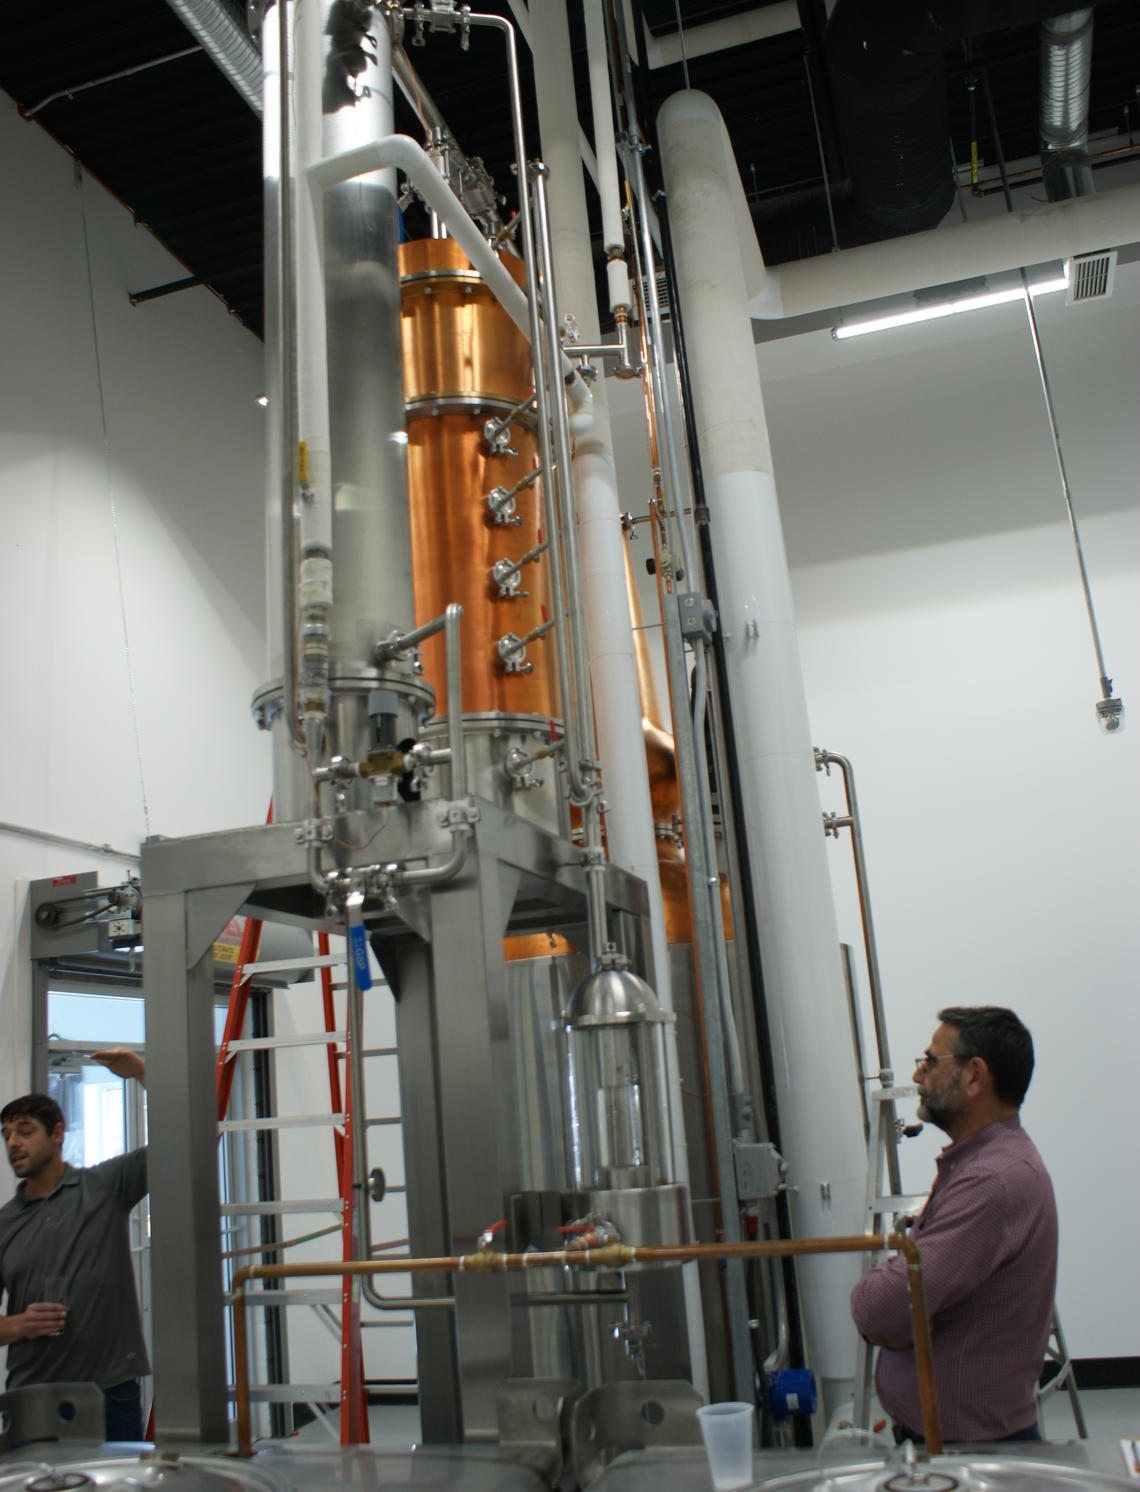 Tomas and Diego Romero in front of Romero Distilling Co.'s large pot stilling apparatus.